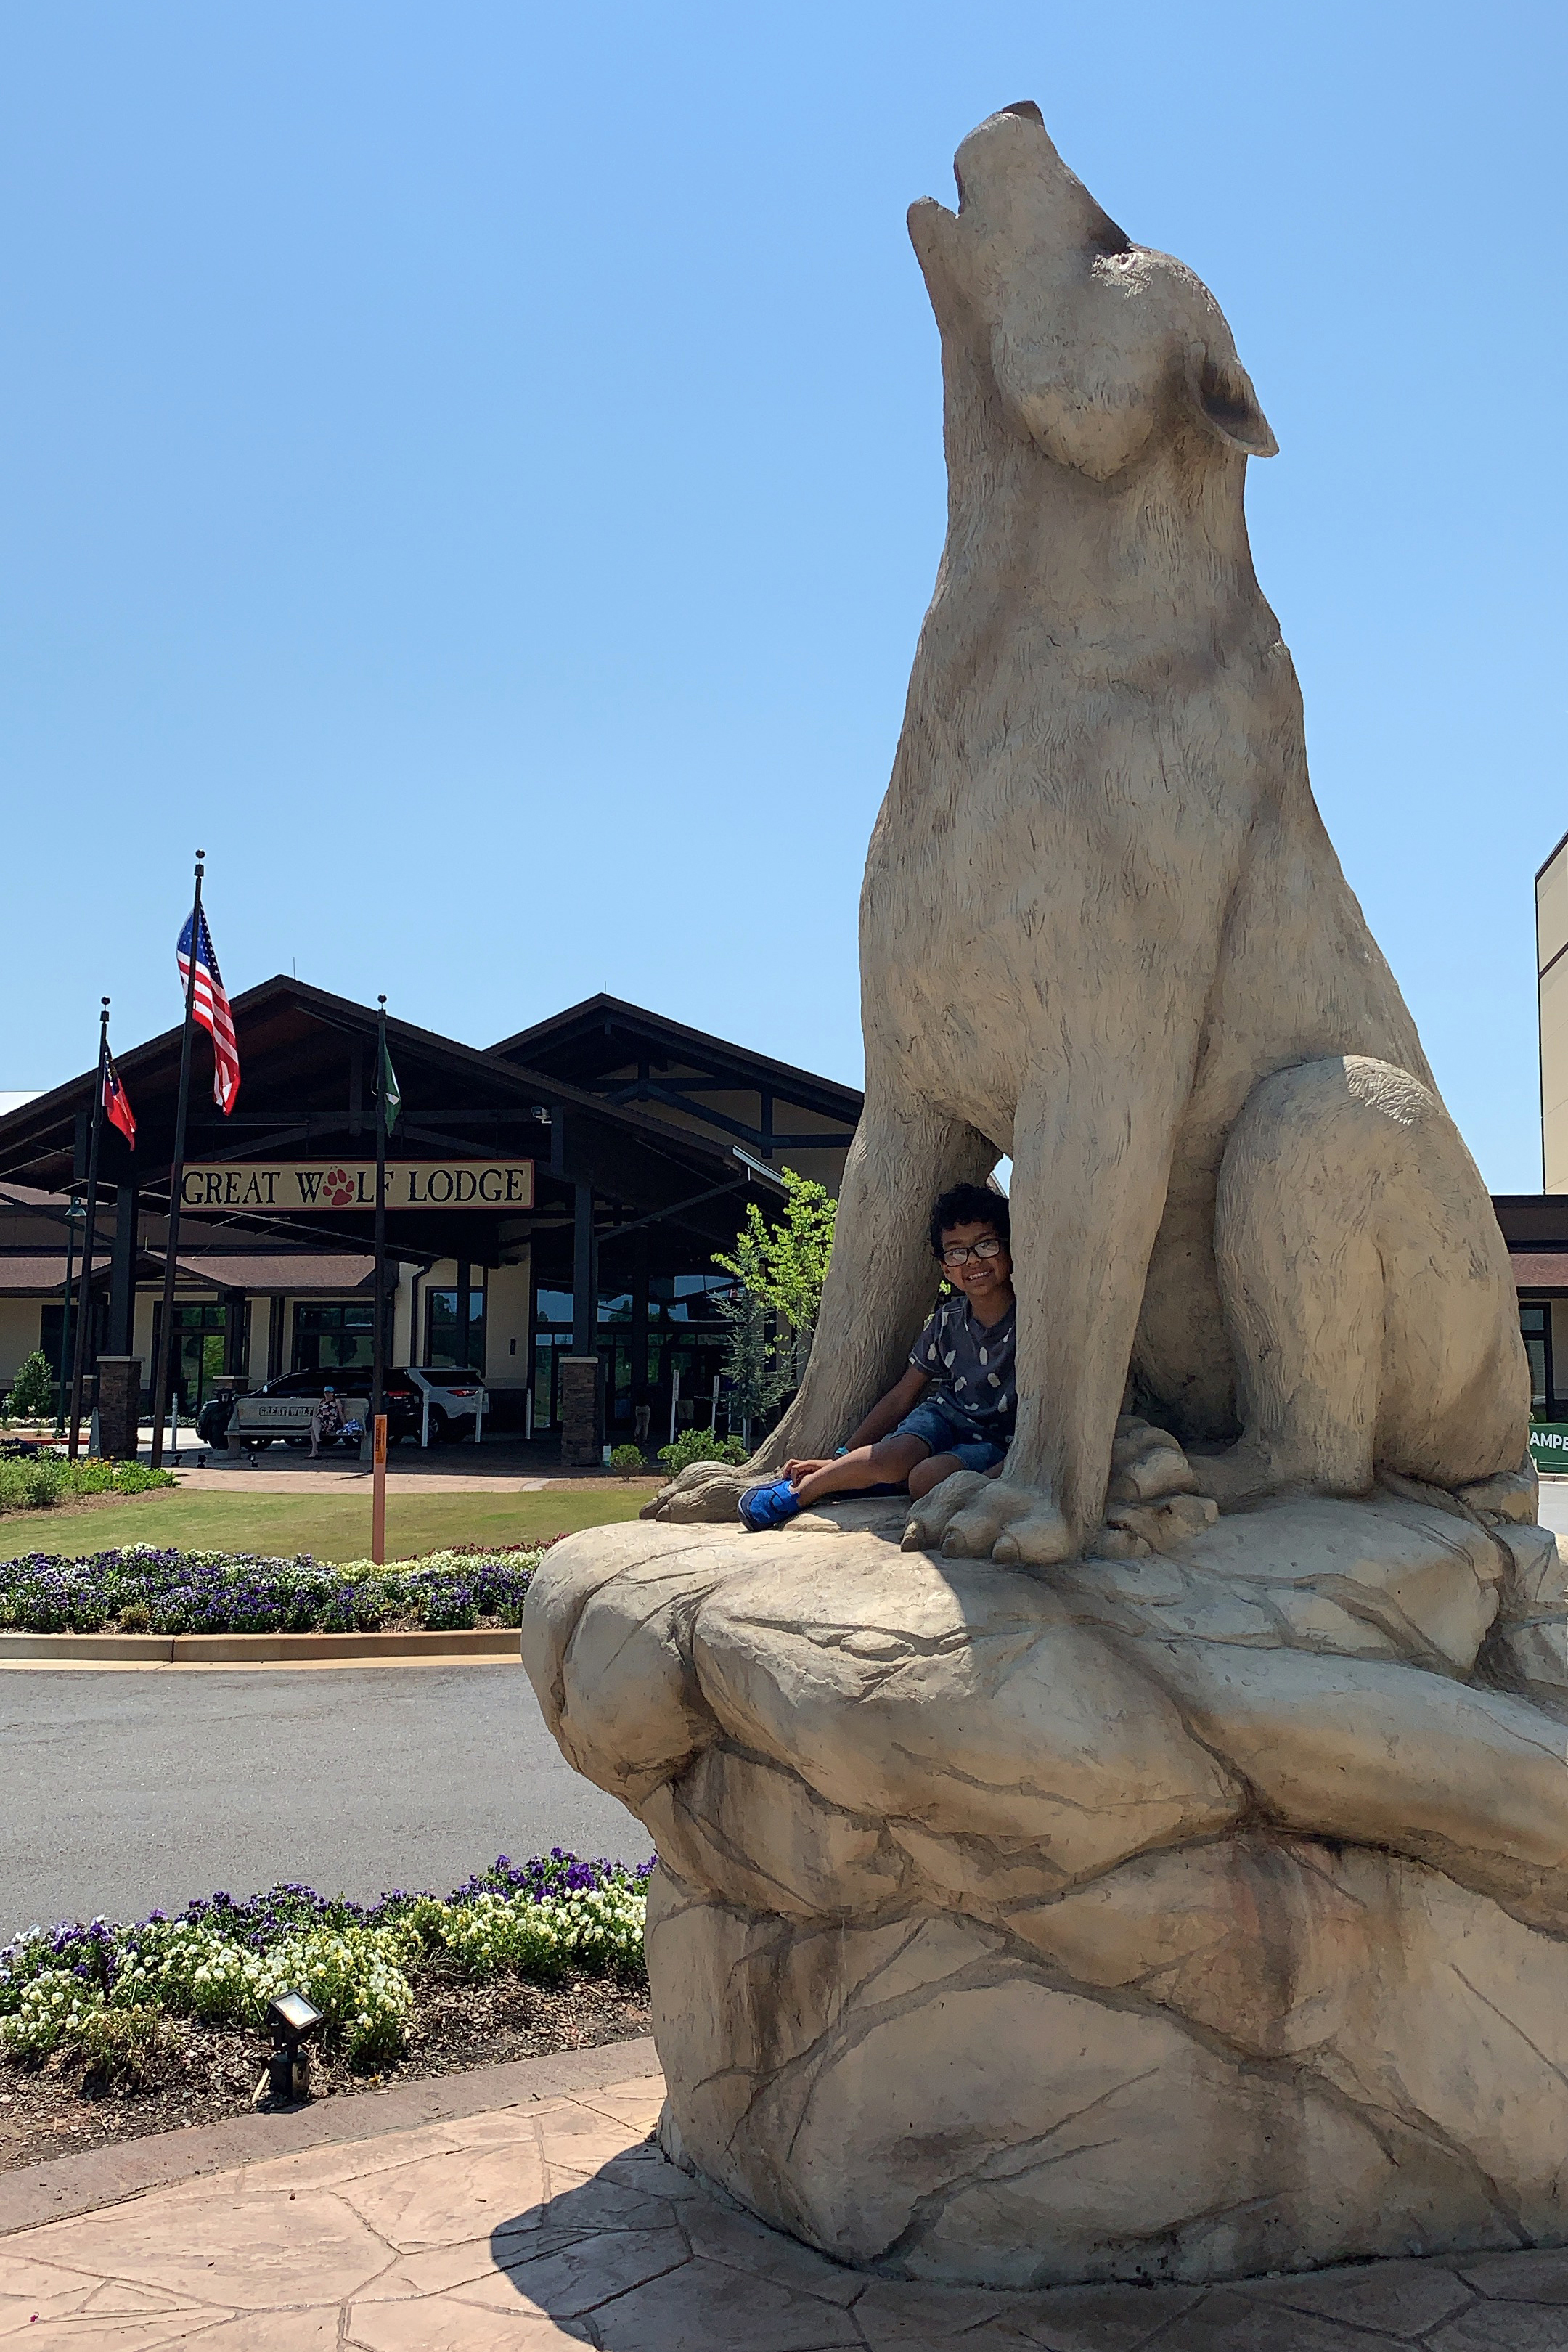 Great Wolf Lodge Kicks-off Summer Camp-IN: We Surprised Our Son with a Visit! Here is a photo of our son sitting on the giant wolf statue outside of Great Wolf Lodge in Atlanta / LaGrange, Georgia.